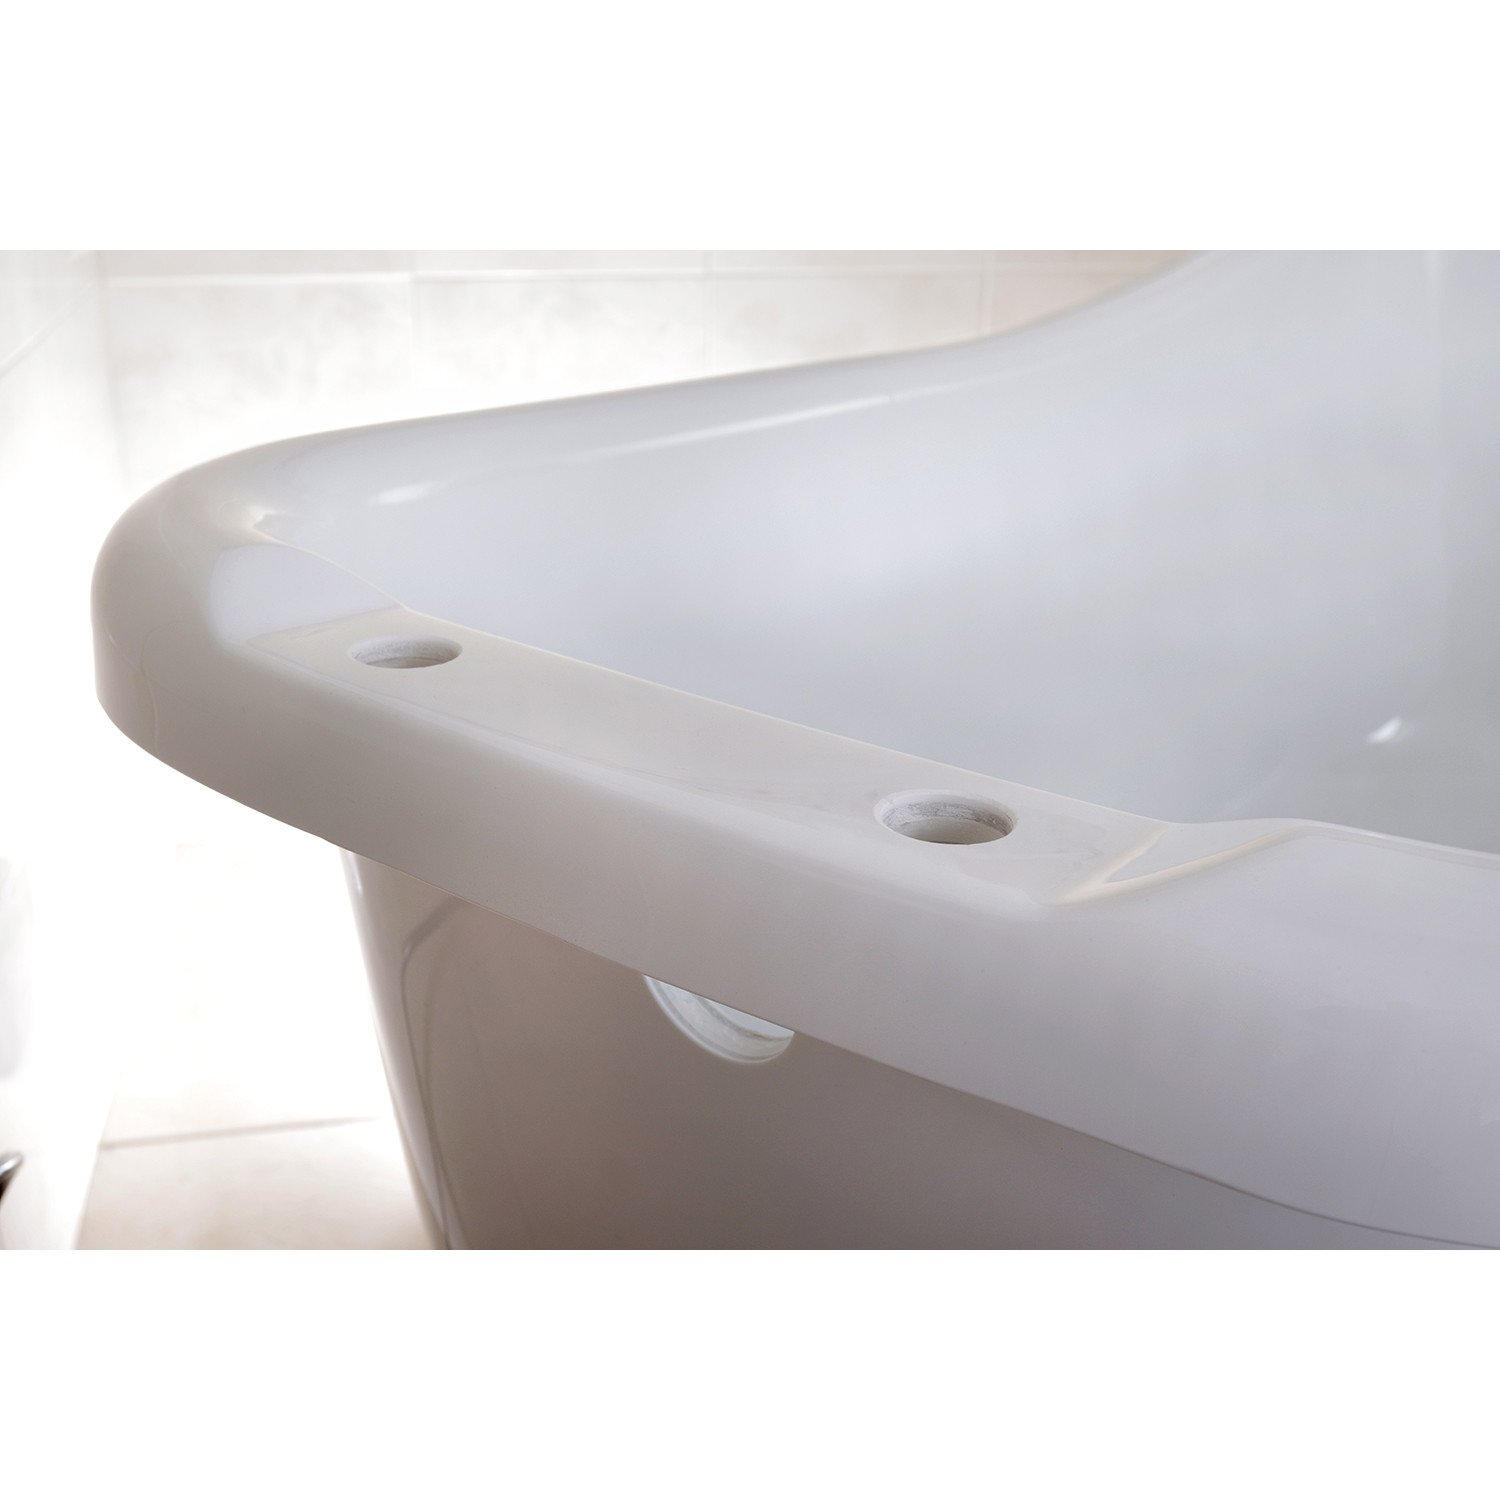 69 Quot Large White Slipper Acrylic Clawfoot Bath Tub With